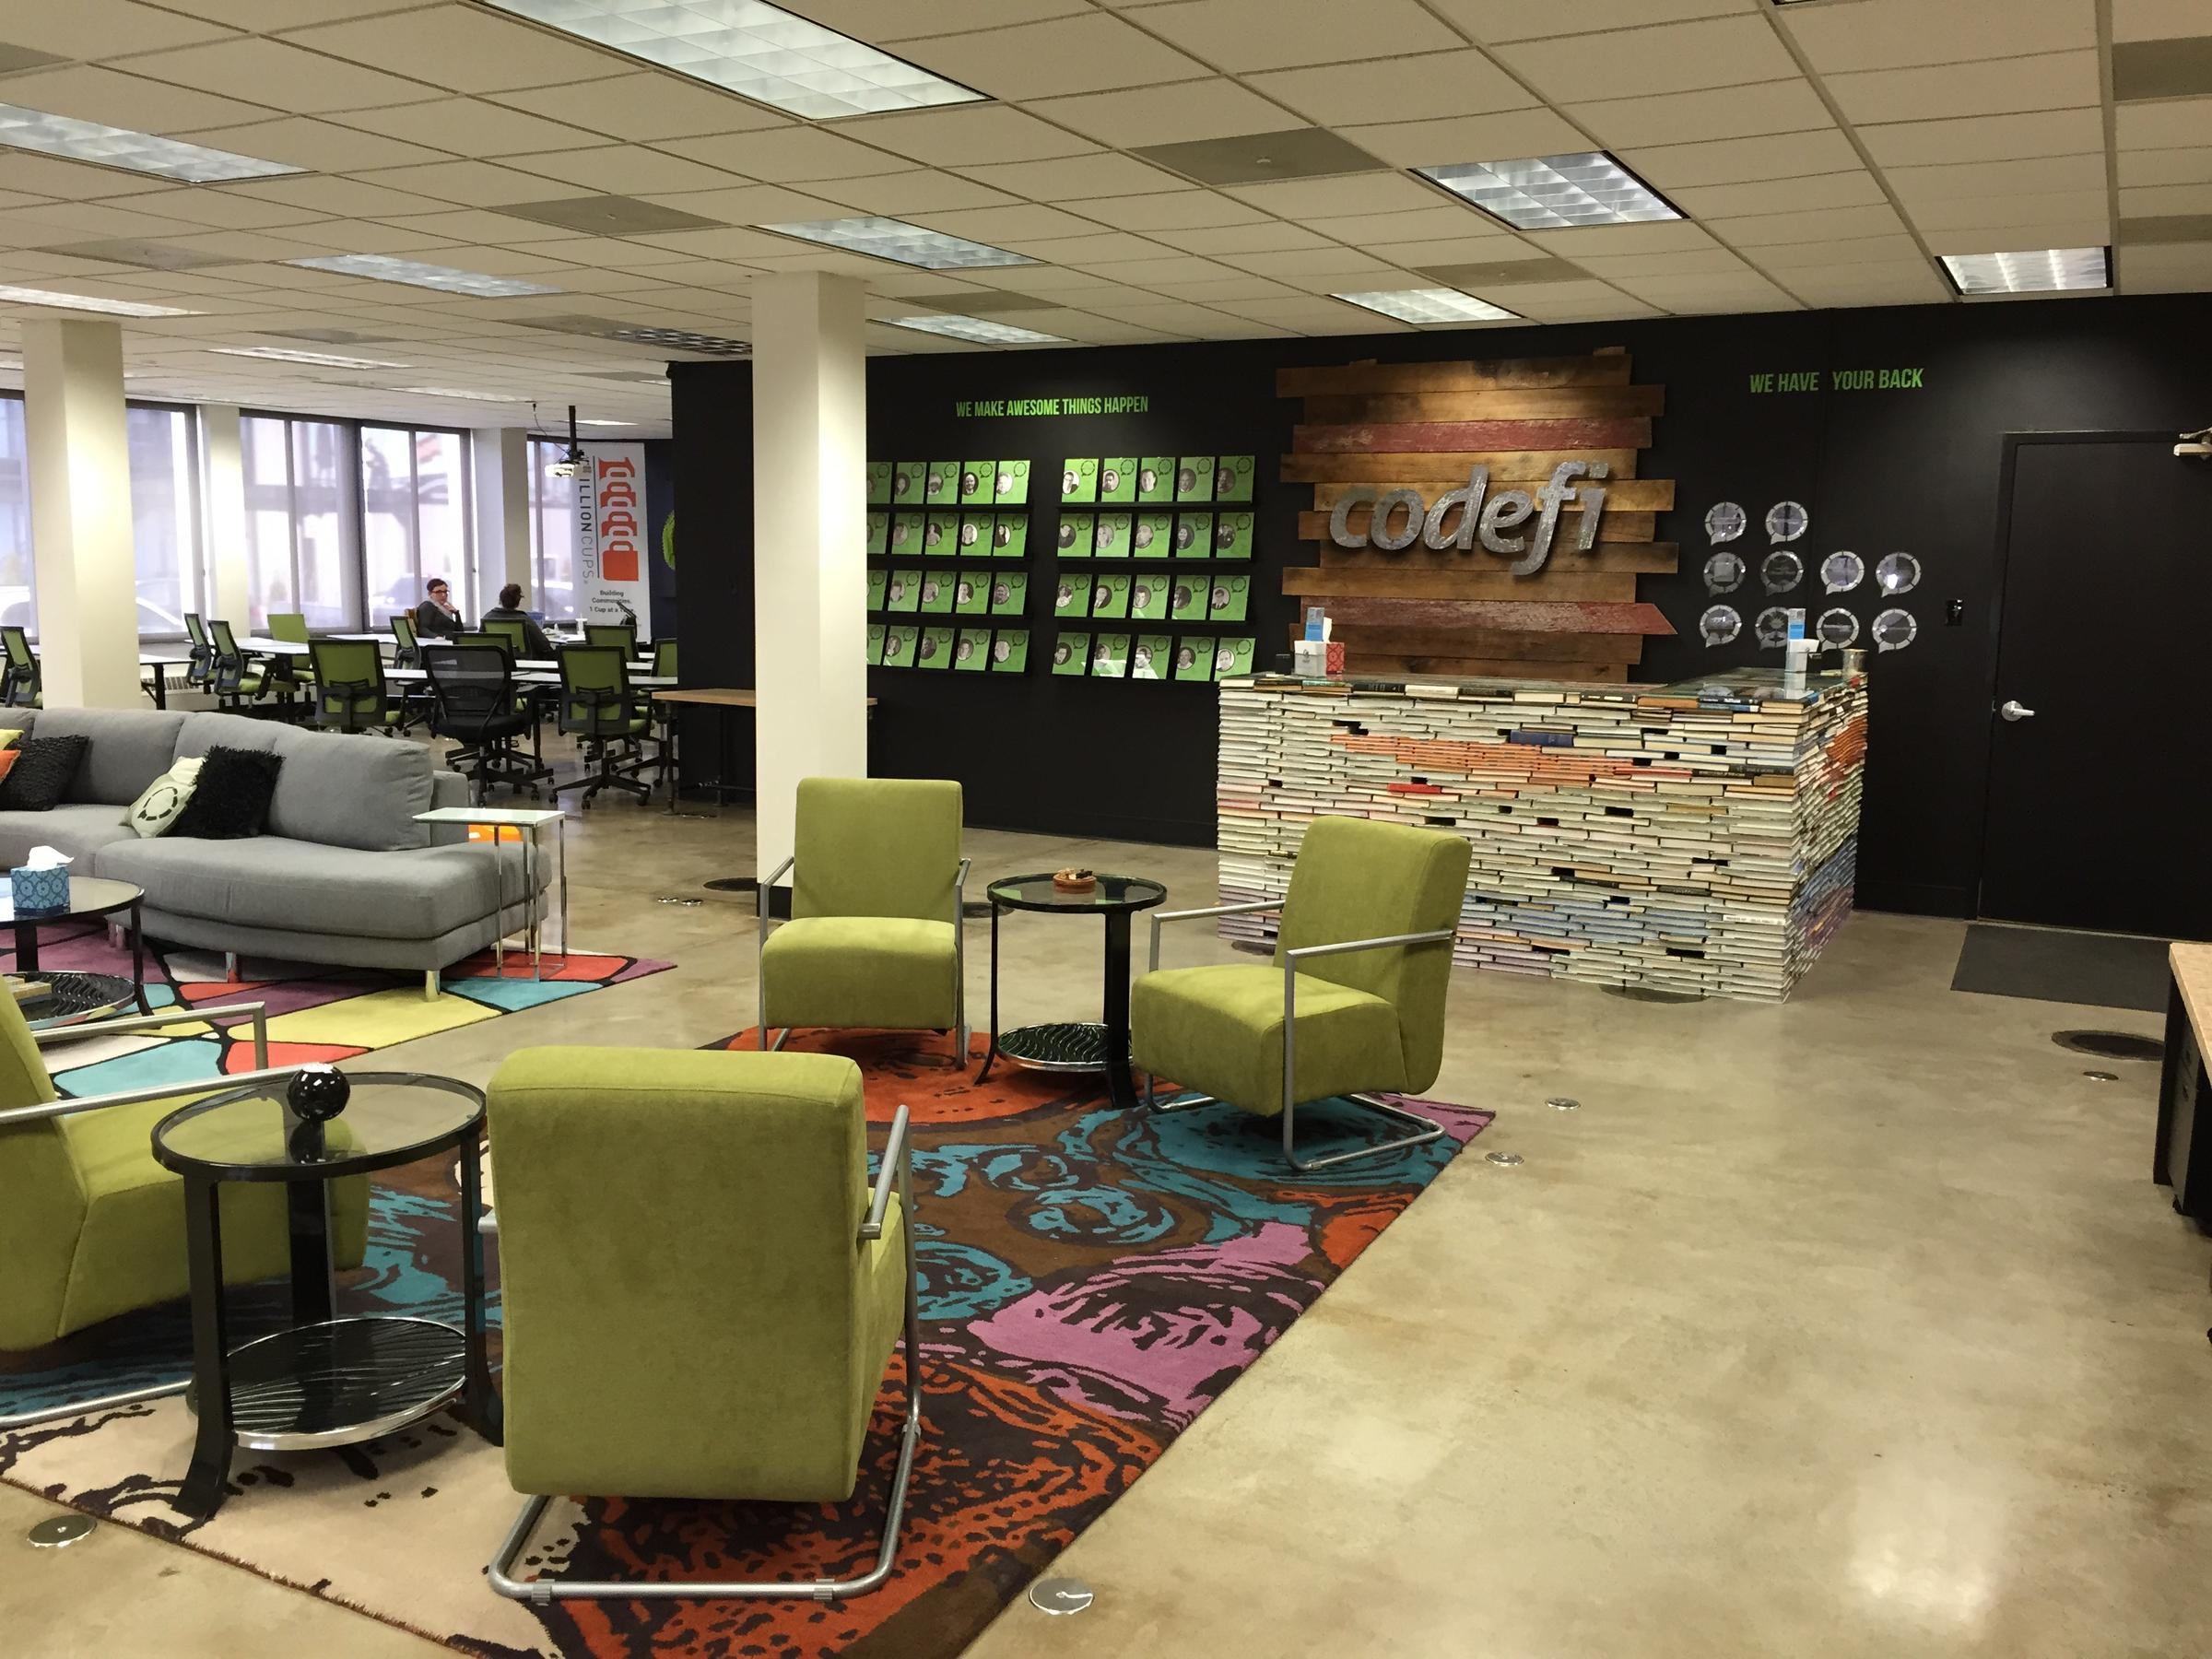 Furniture Stores In Cape Girardeau Entrepreneurs To Develop Ideas At Startup Weekend In 7 Of